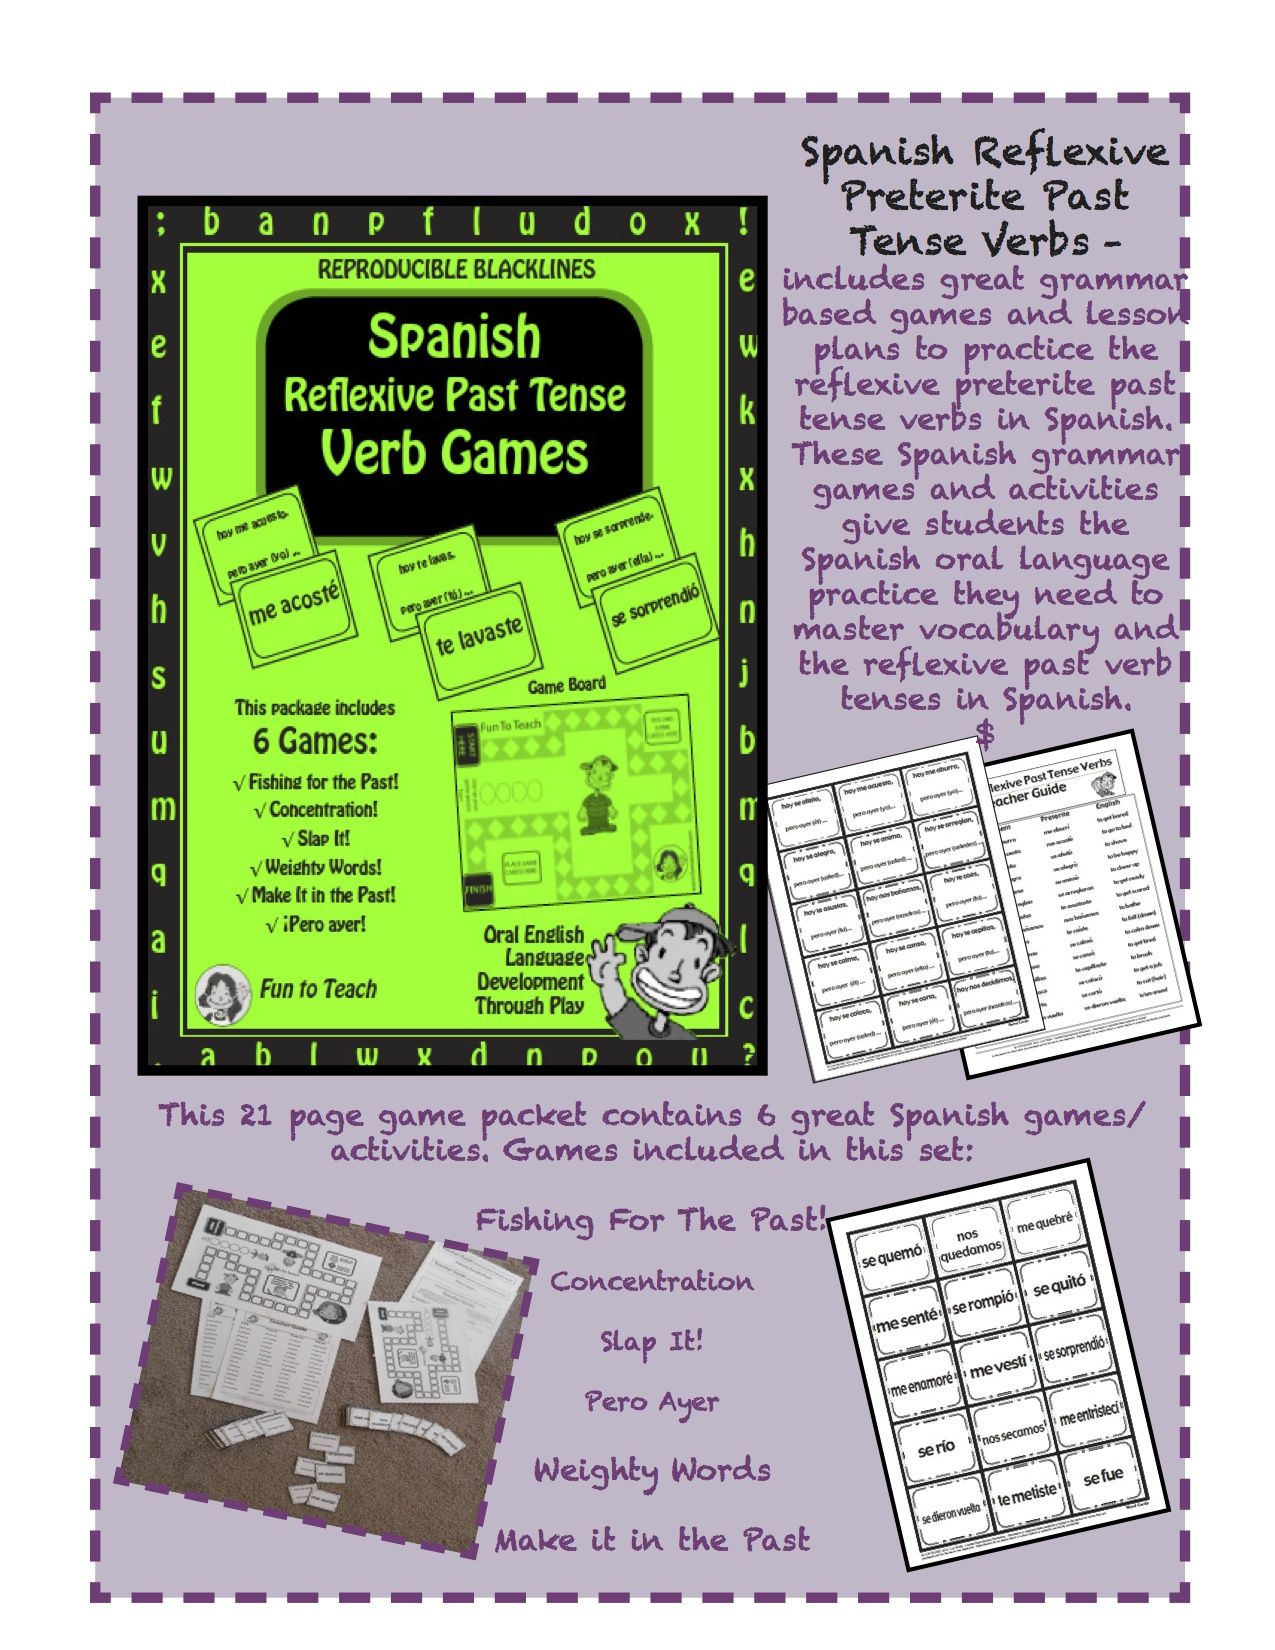 Spanish Preterite Past Tense Verbs- Games and Lesson Plans (Spanish Edition)